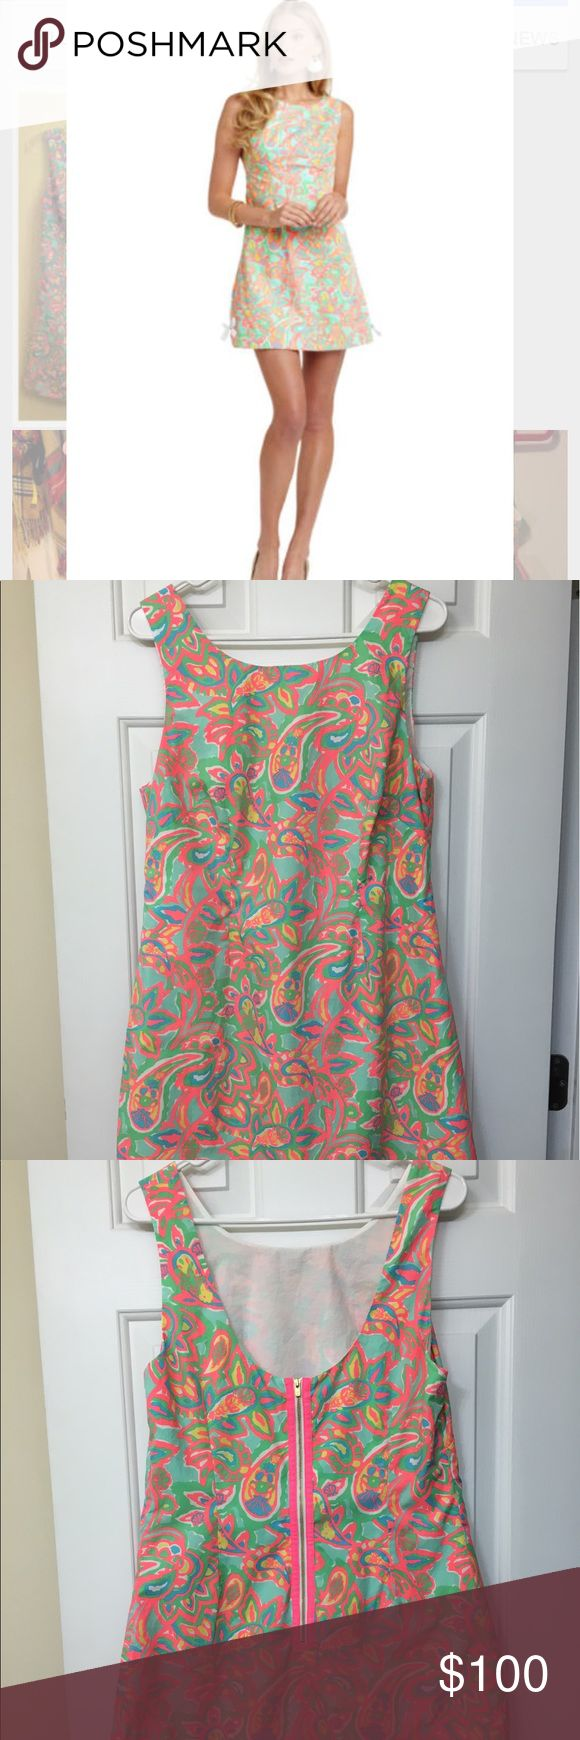 Lilly Pulitzer Make A Splash Delia 12 Authentic and in excellent preowned condition. Worn only one time for an event. You cannot see in the photos but this dress does have two solid white side bows. The dress is double lined and zips up the back. Shipped immediately from a smoke free home. Lilly Pulitzer Dresses Midi